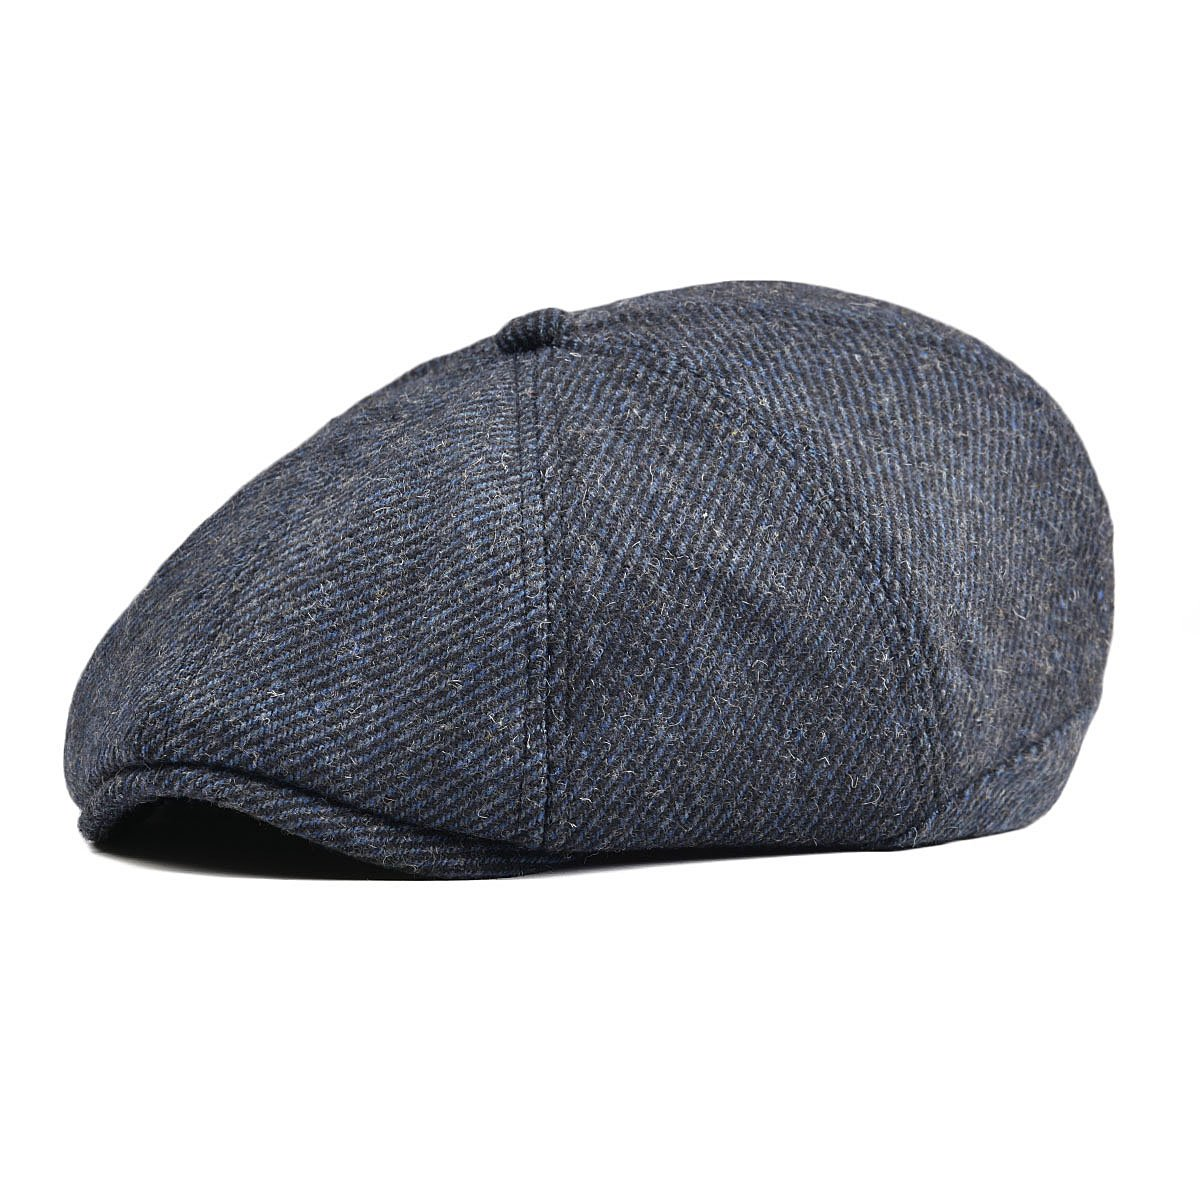 VOBOOM Berretto Newsboy Berretto in 8  Pannel Ivy cap Cabbie Coppola MZ111 BDMZ111-Gry